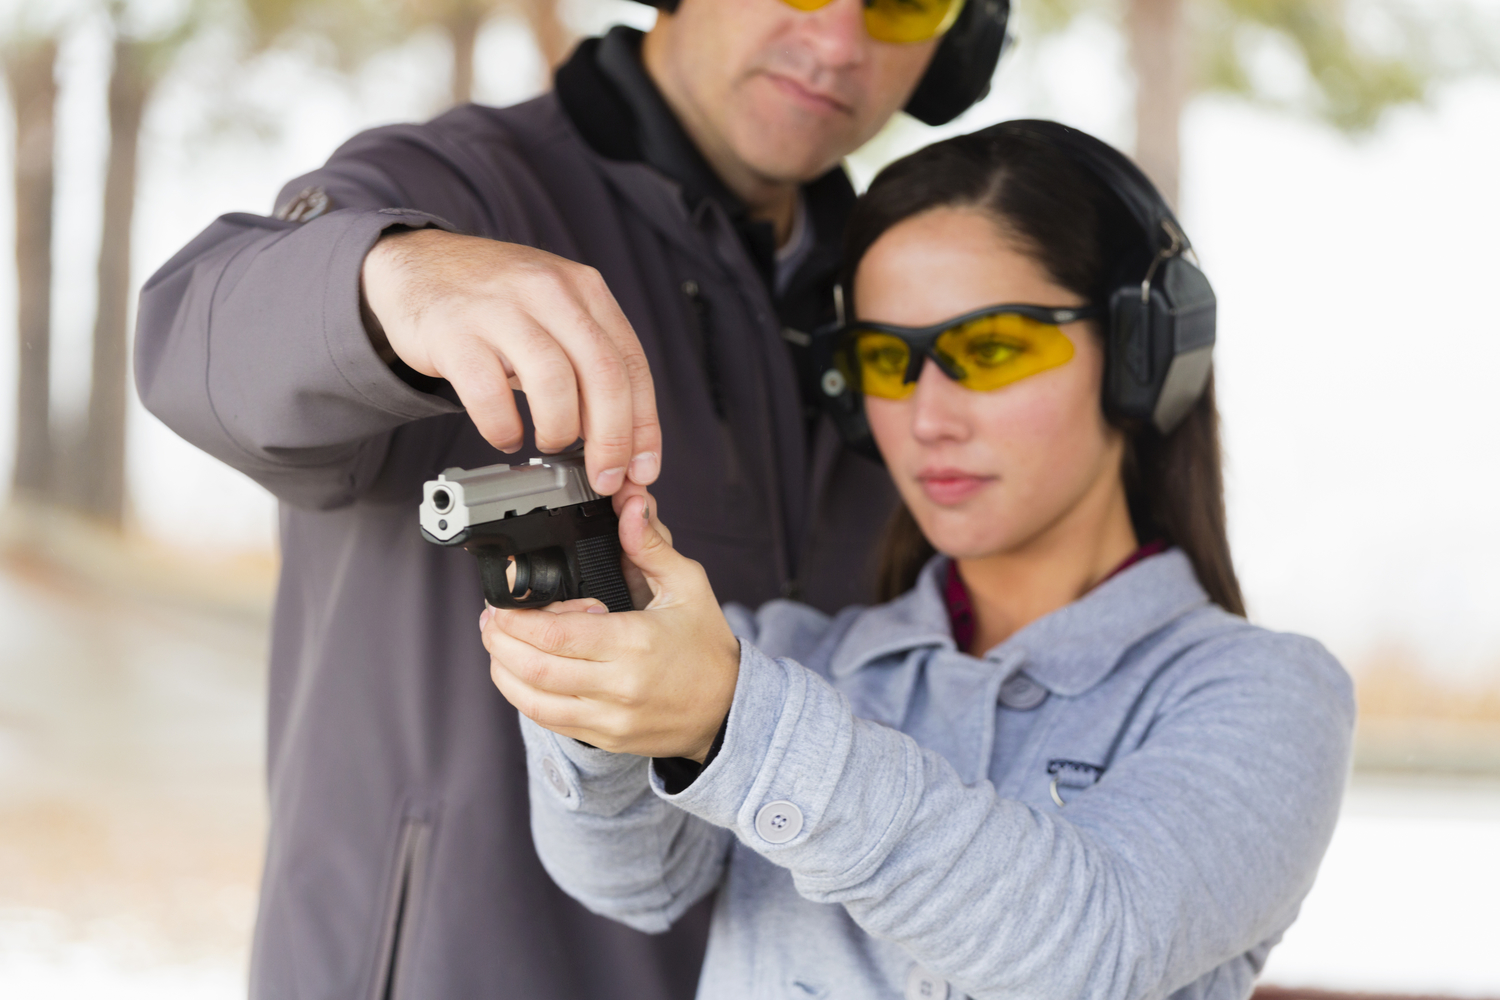 Restricted Firearms Safety Course — Safety Services Nova Scotia